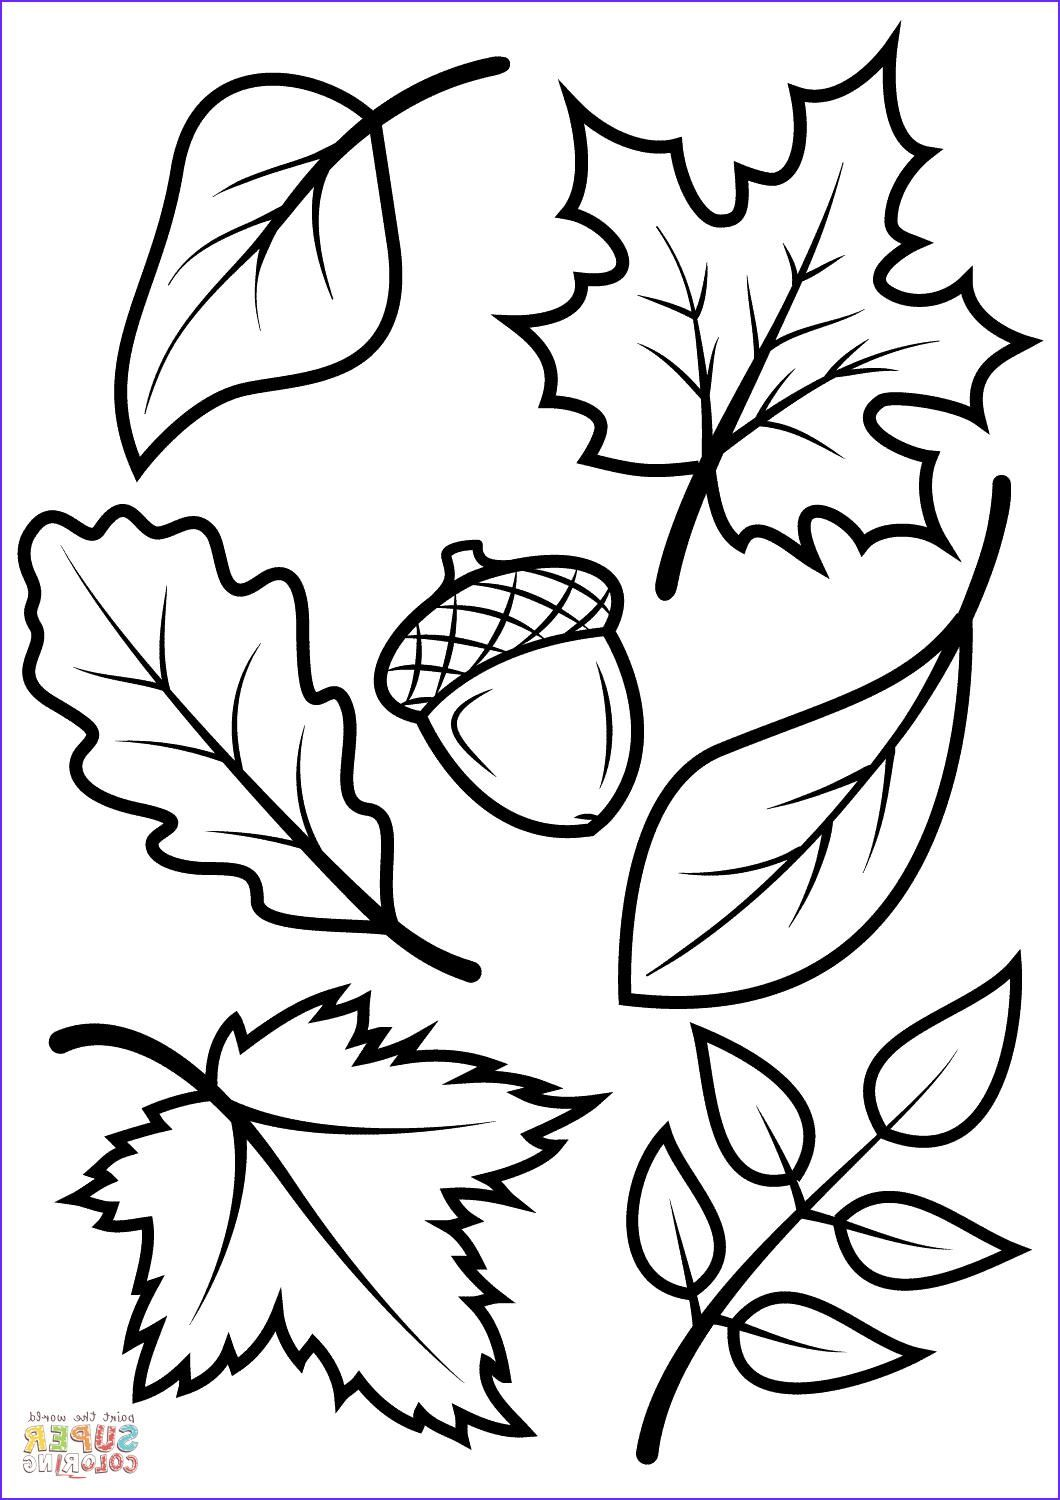 42 Coloring Page Leaves Leaf Coloring Page Fall Coloring Sheets Fall Leaves Coloring Pages